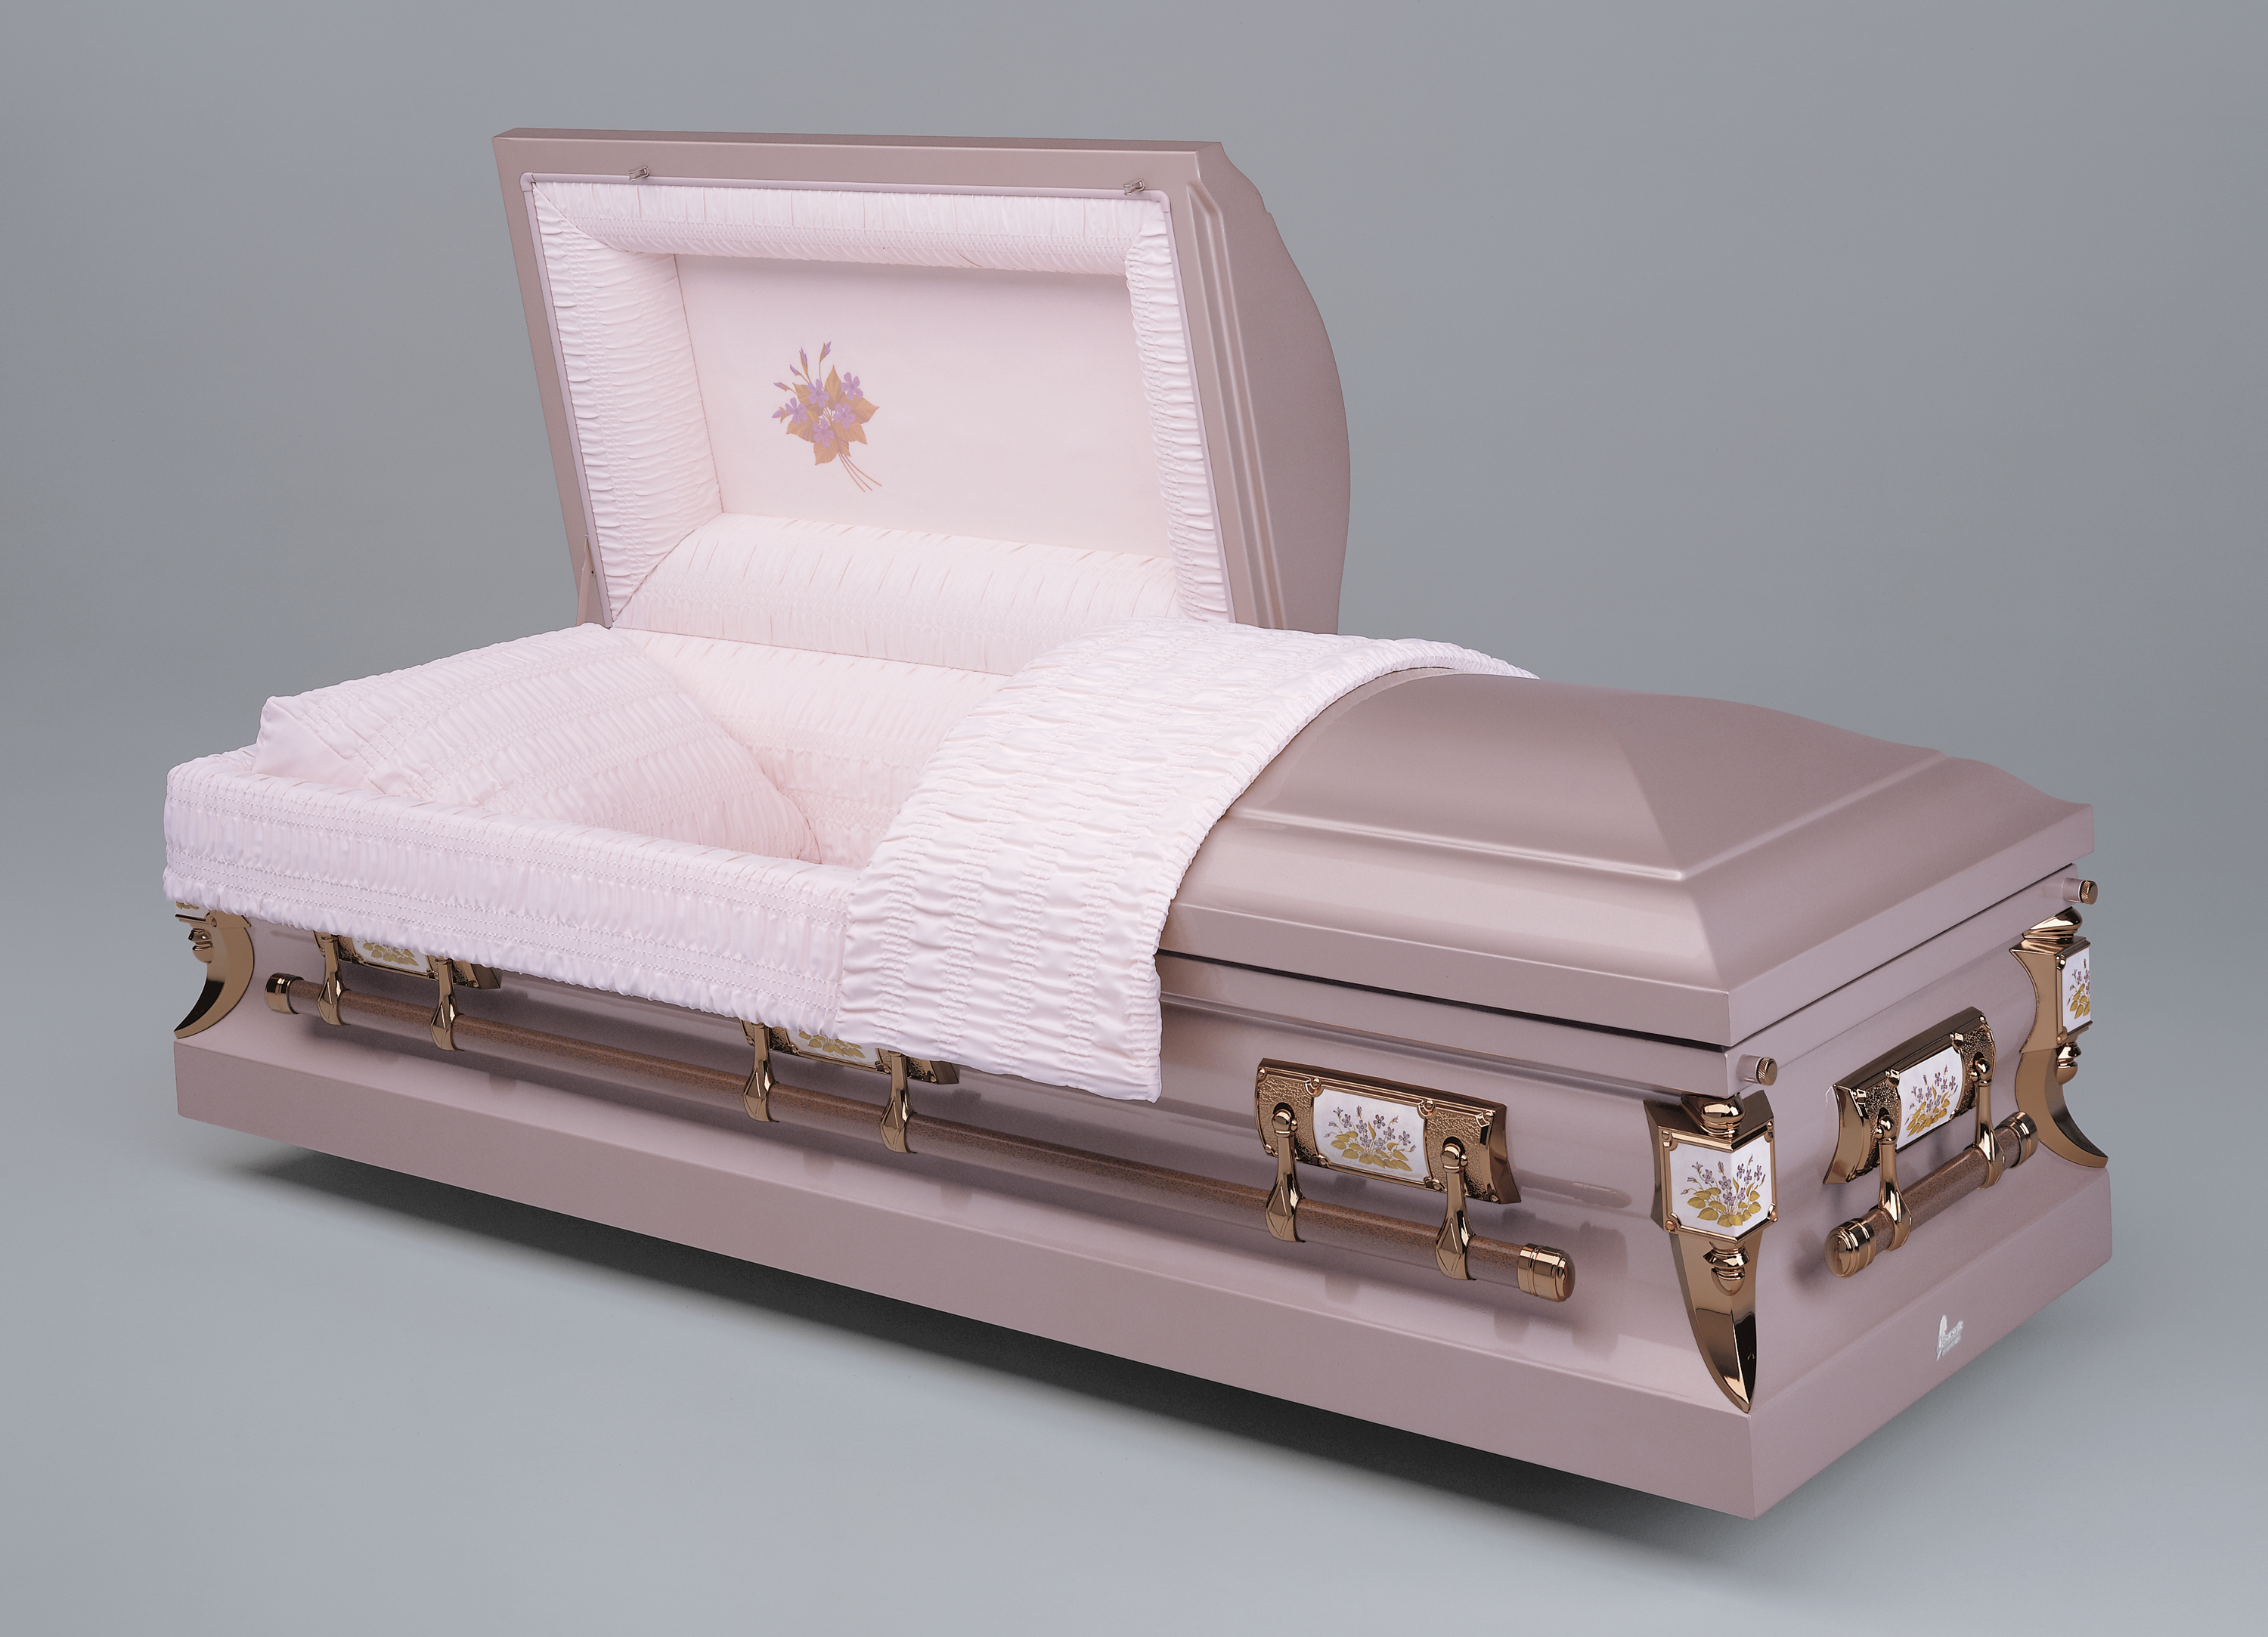 Moss Funeral Home